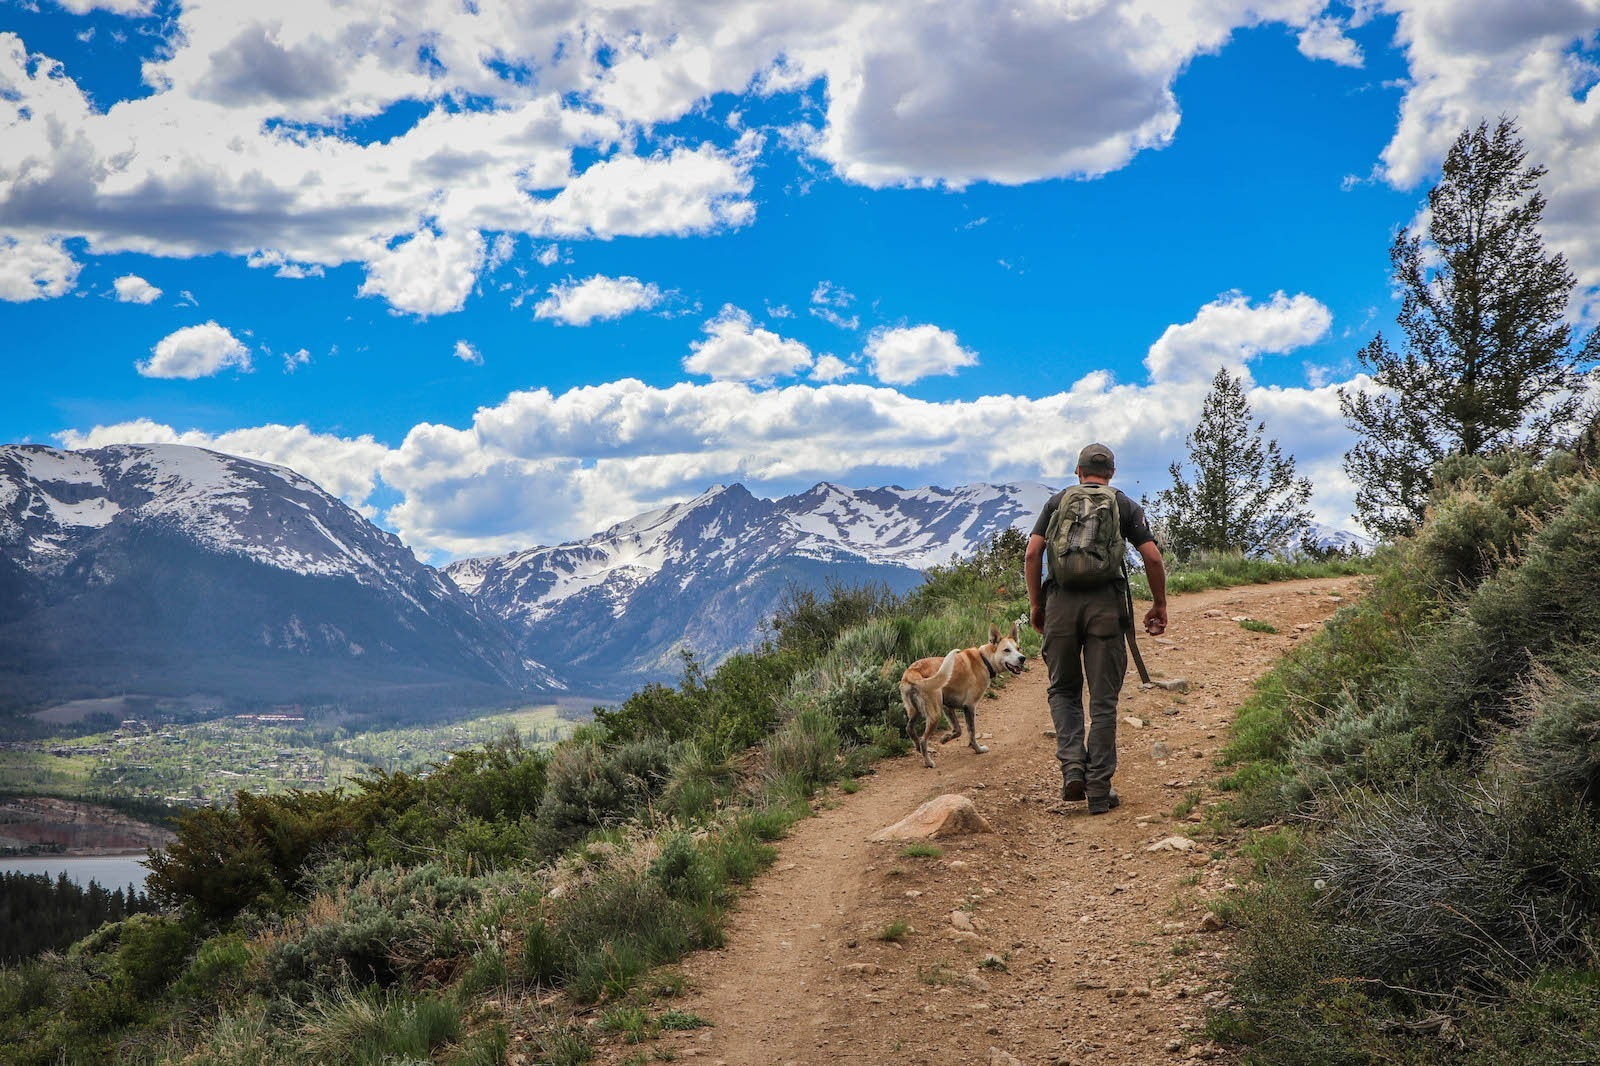 Hike into town or in to the high Colorado mountains from your campsite on Lake Dillon